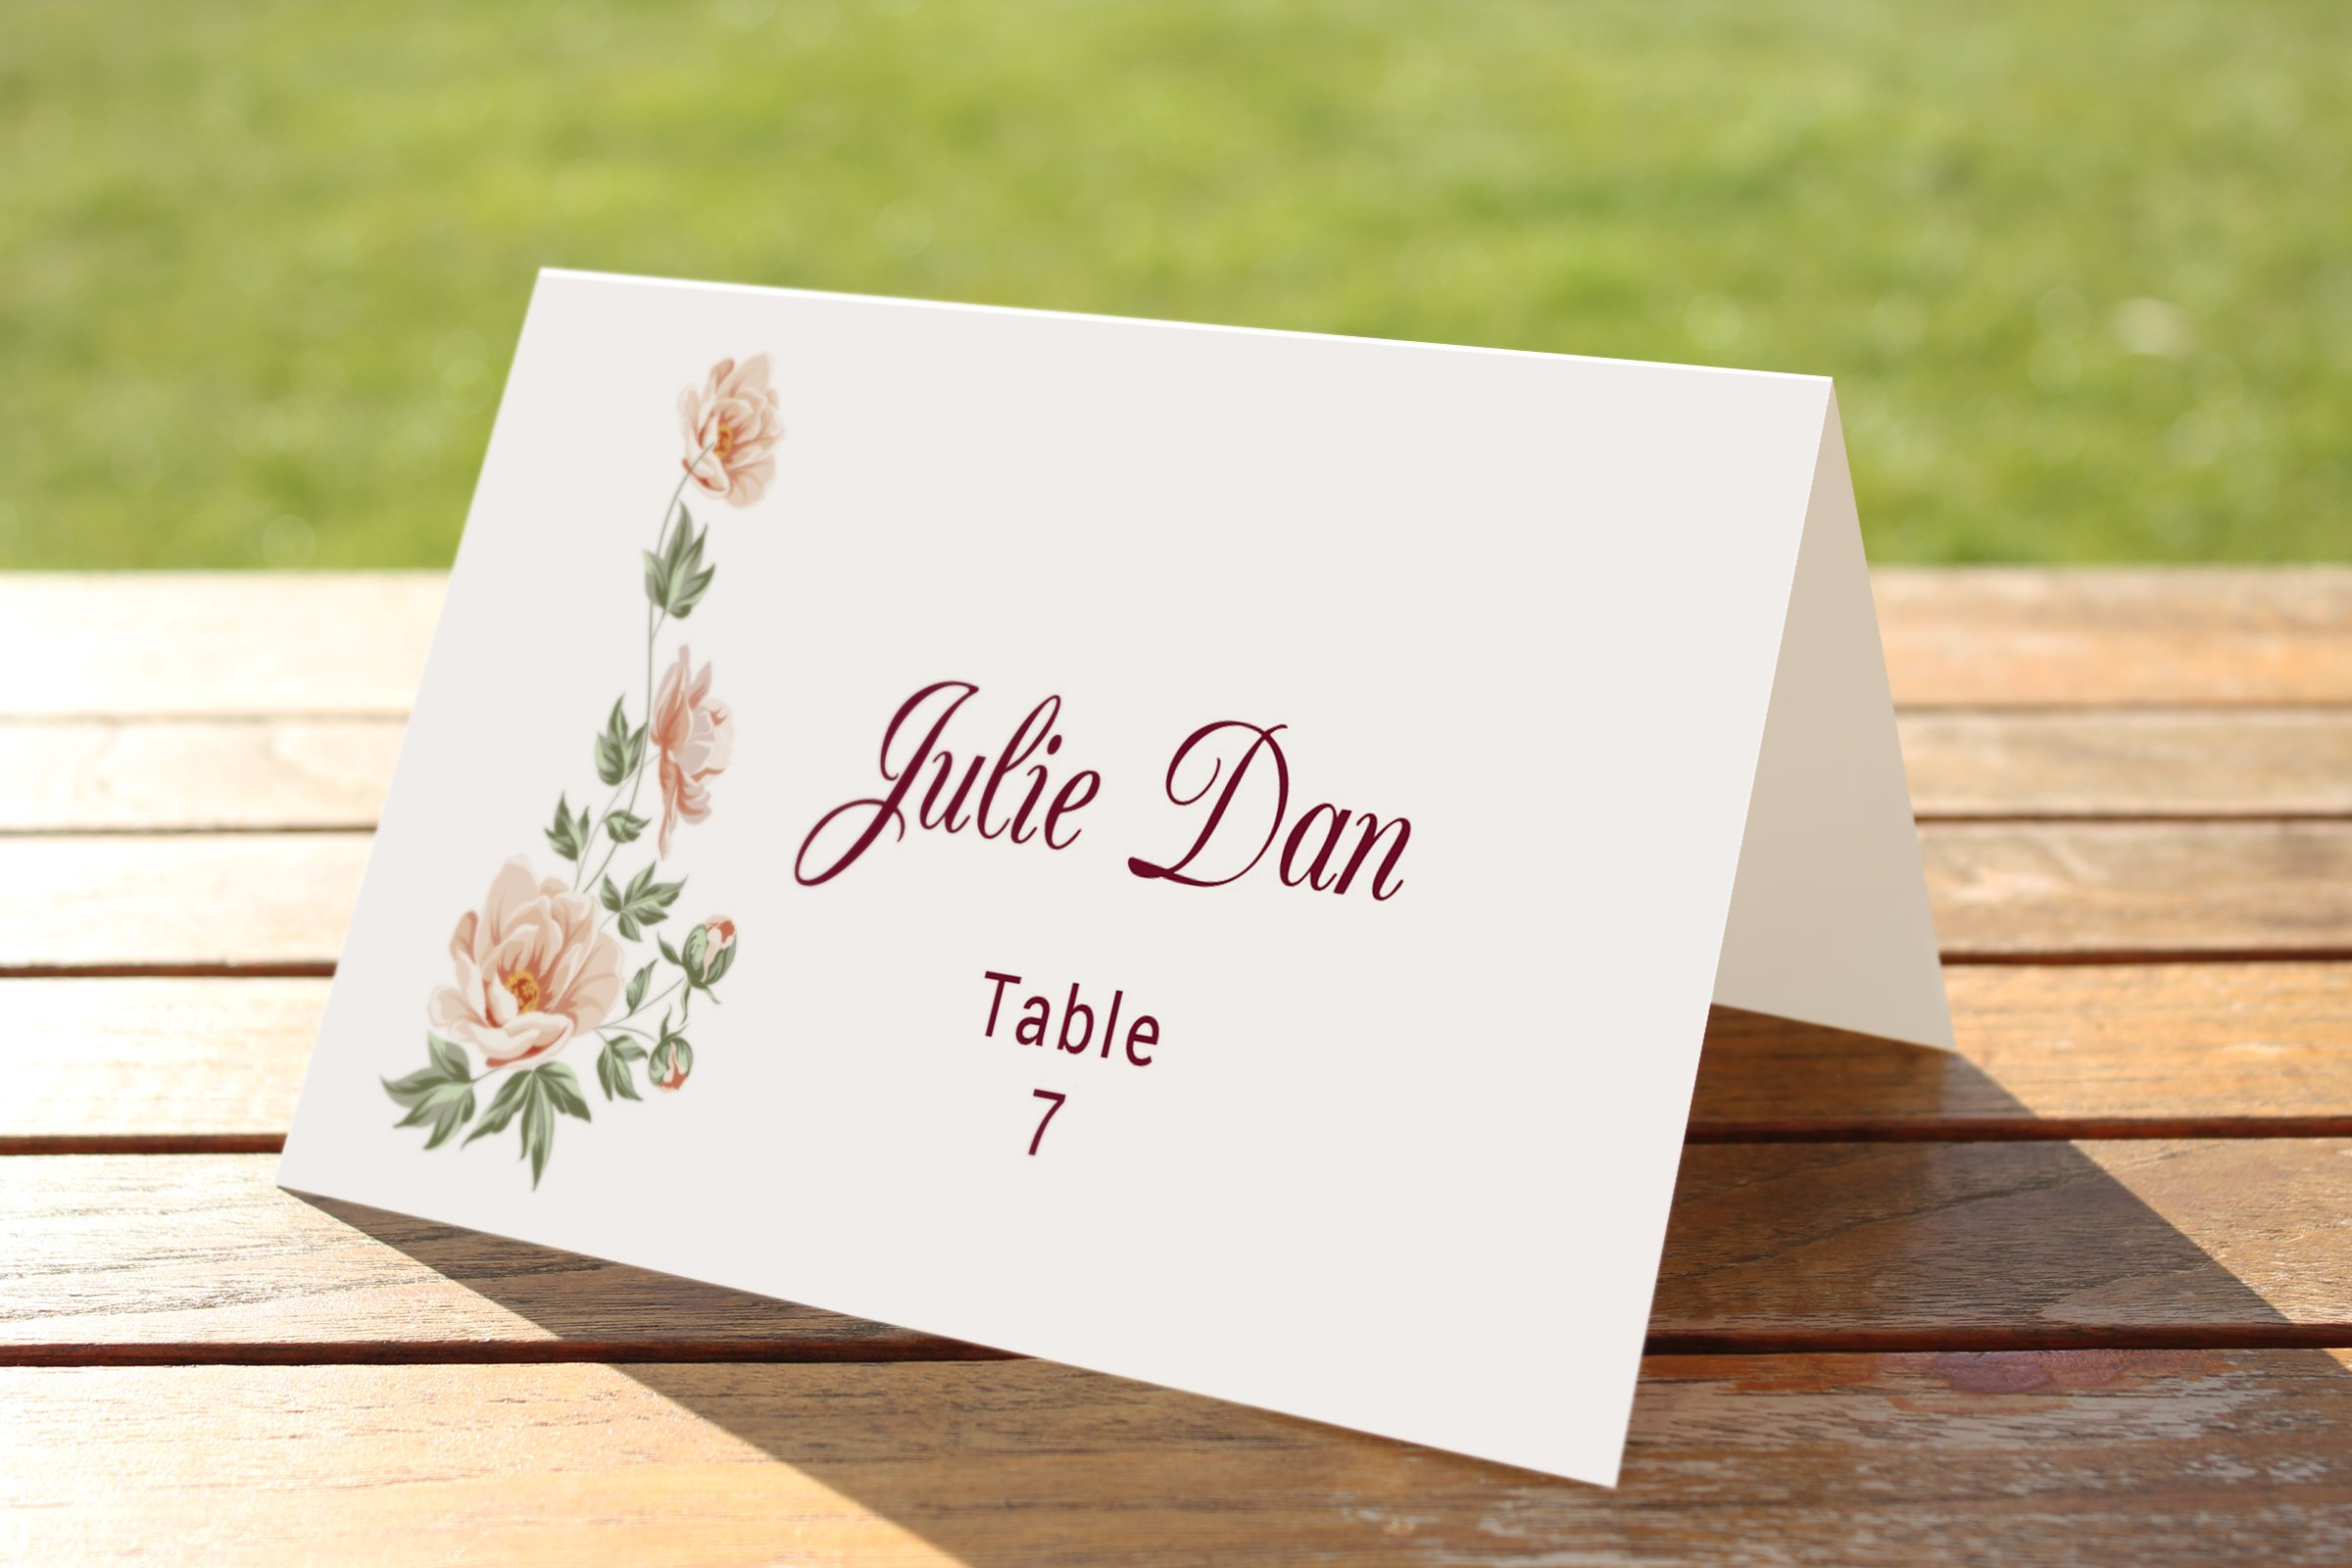 Wedding table place card template card templates for Design table name cards